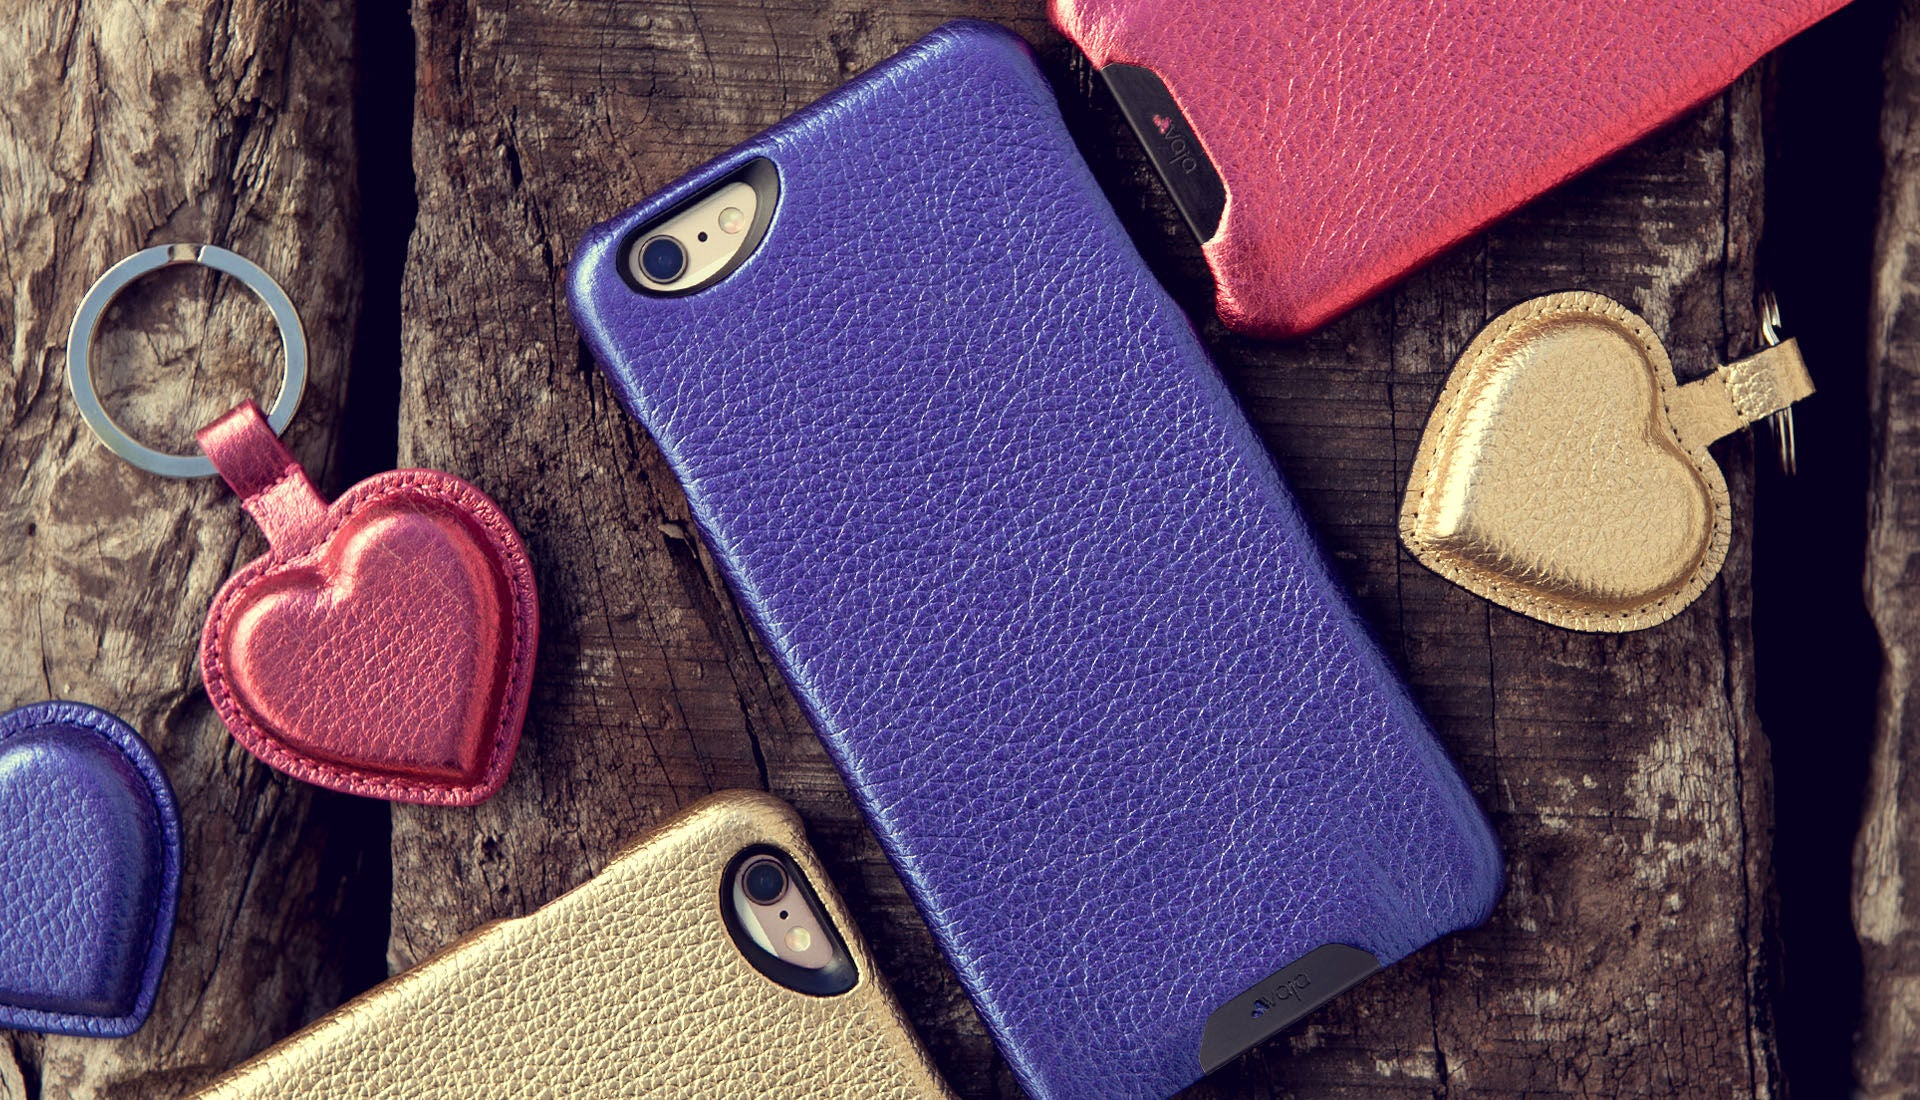 iPhone 6/6s Plus Metallic Leather Grip Case